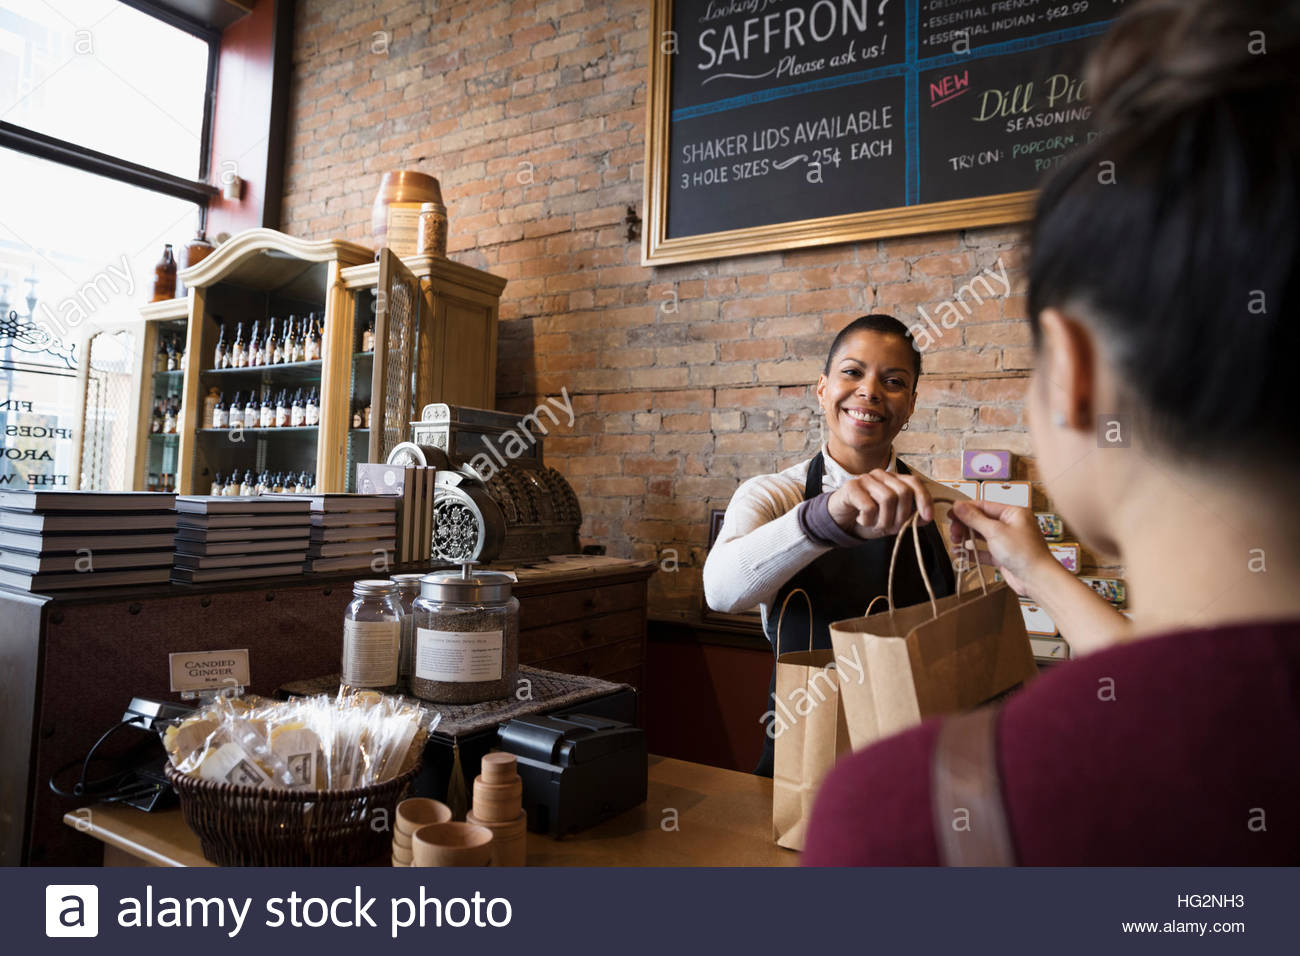 Smiling female spice shop owner giving shopping bags to customer at counter - Stock Image